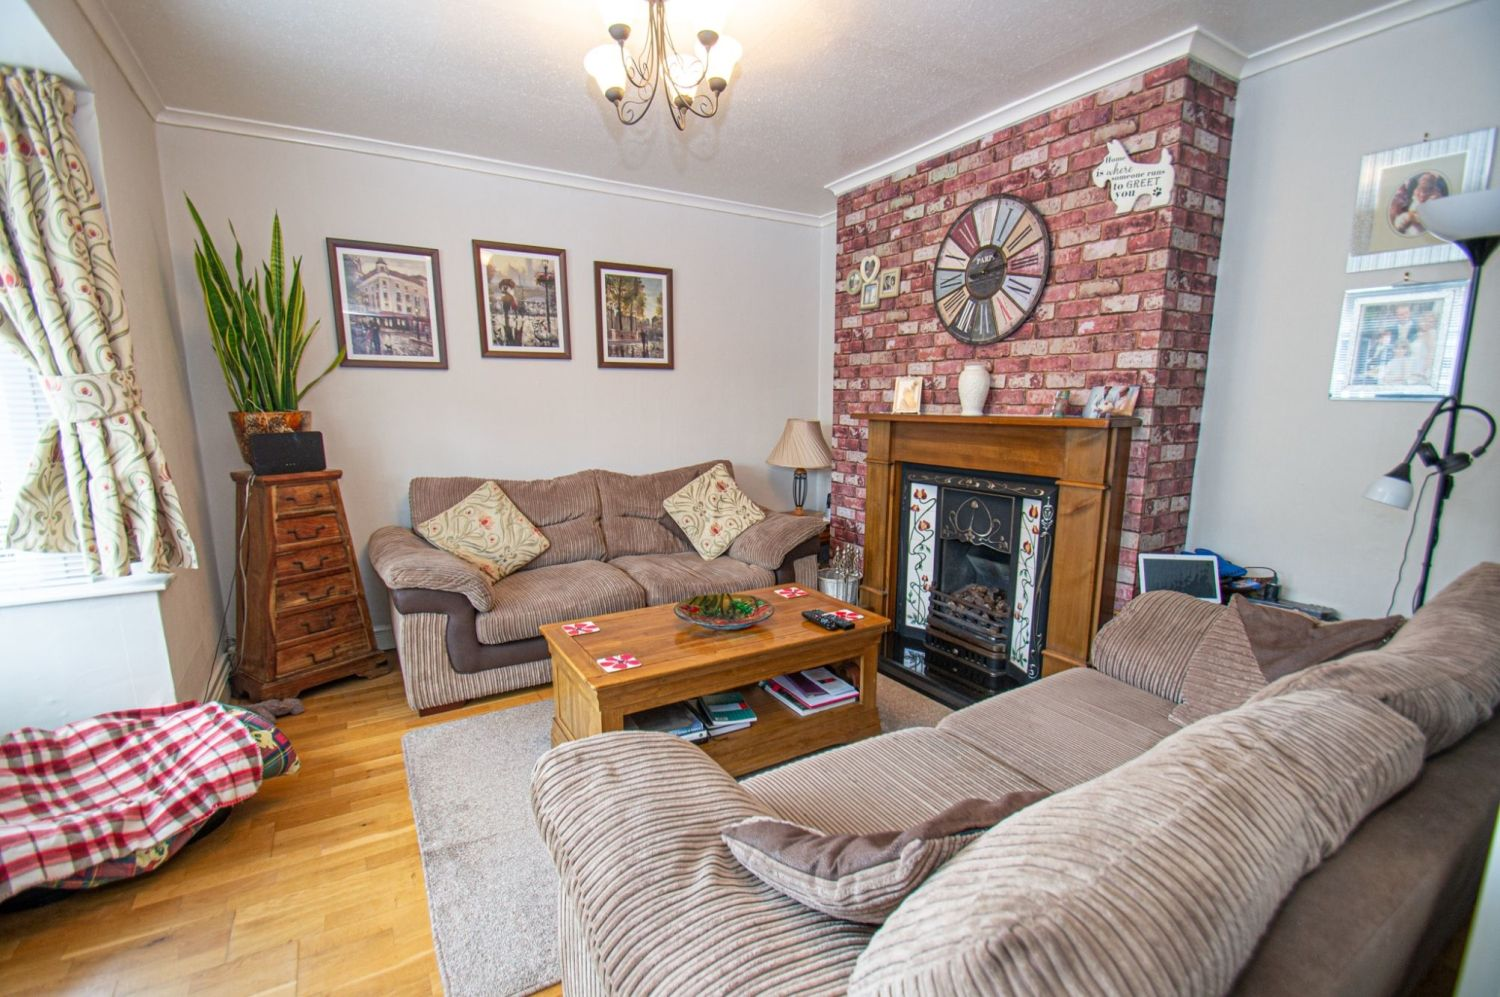 4 bed semi-detached for sale in Wheatcroft Close, Halesowen  - Property Image 3